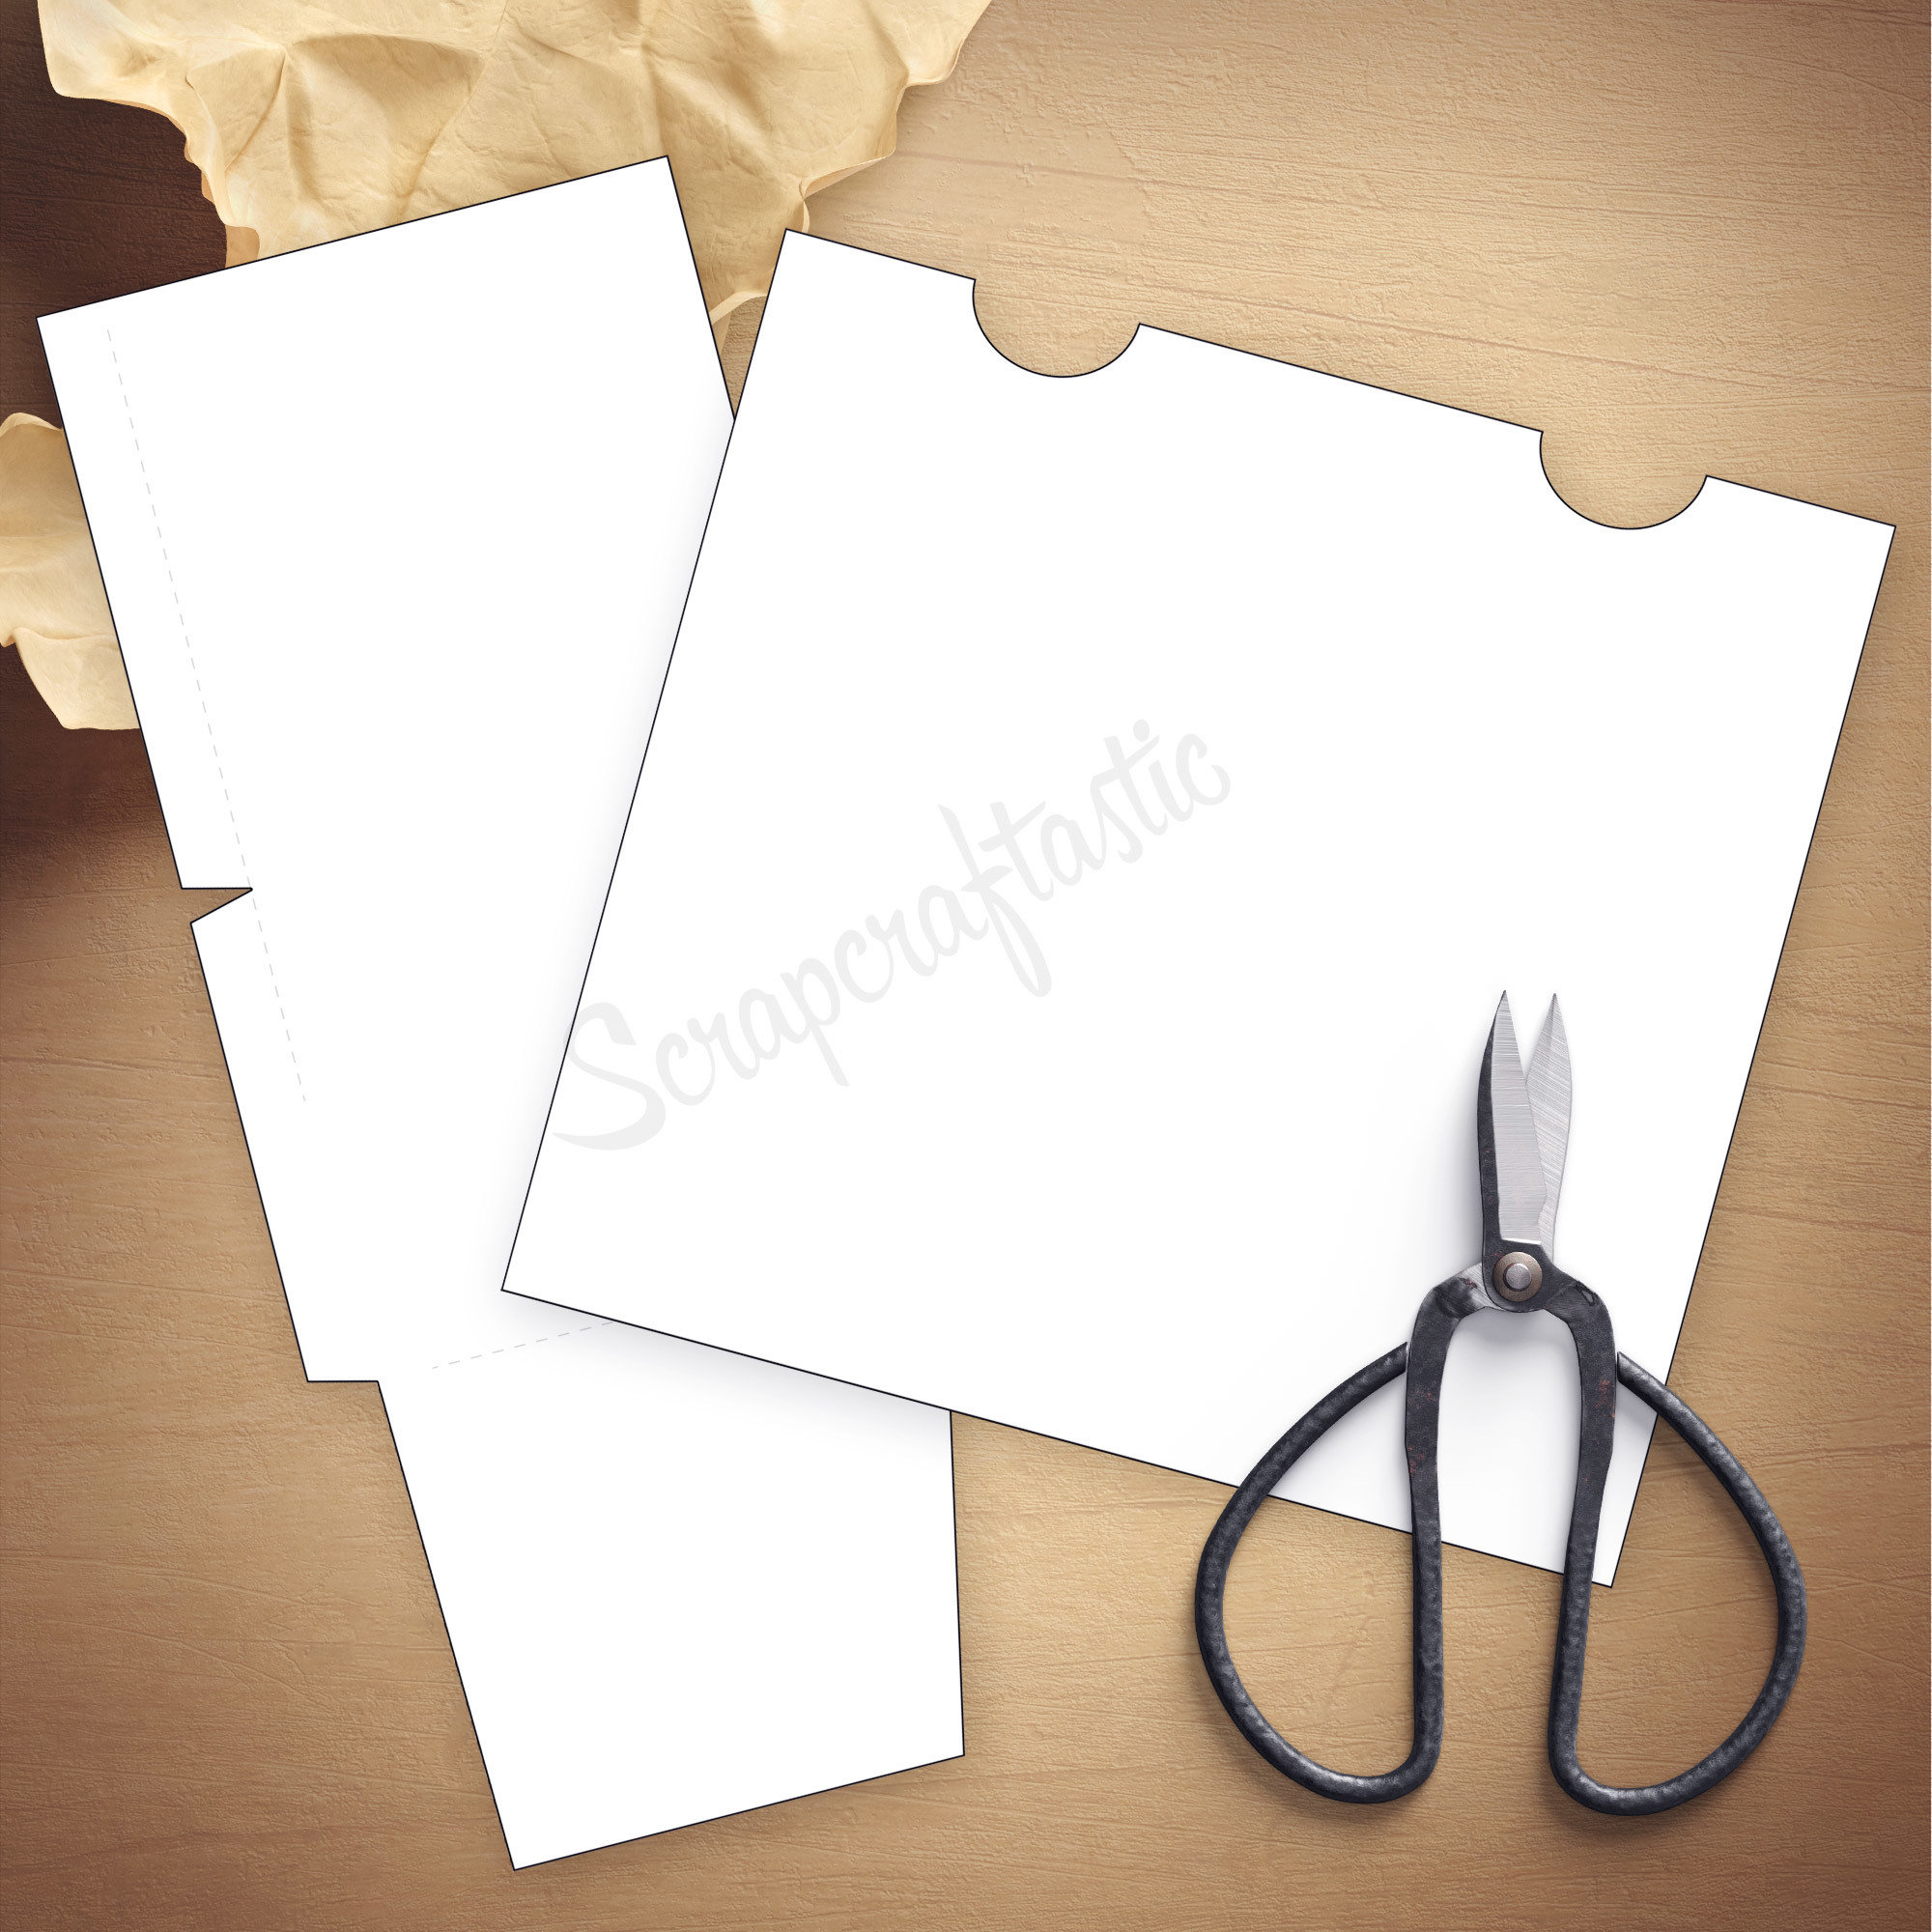 Folder Insert Template for Standard or Regular Size Traveler's Notebook 07010